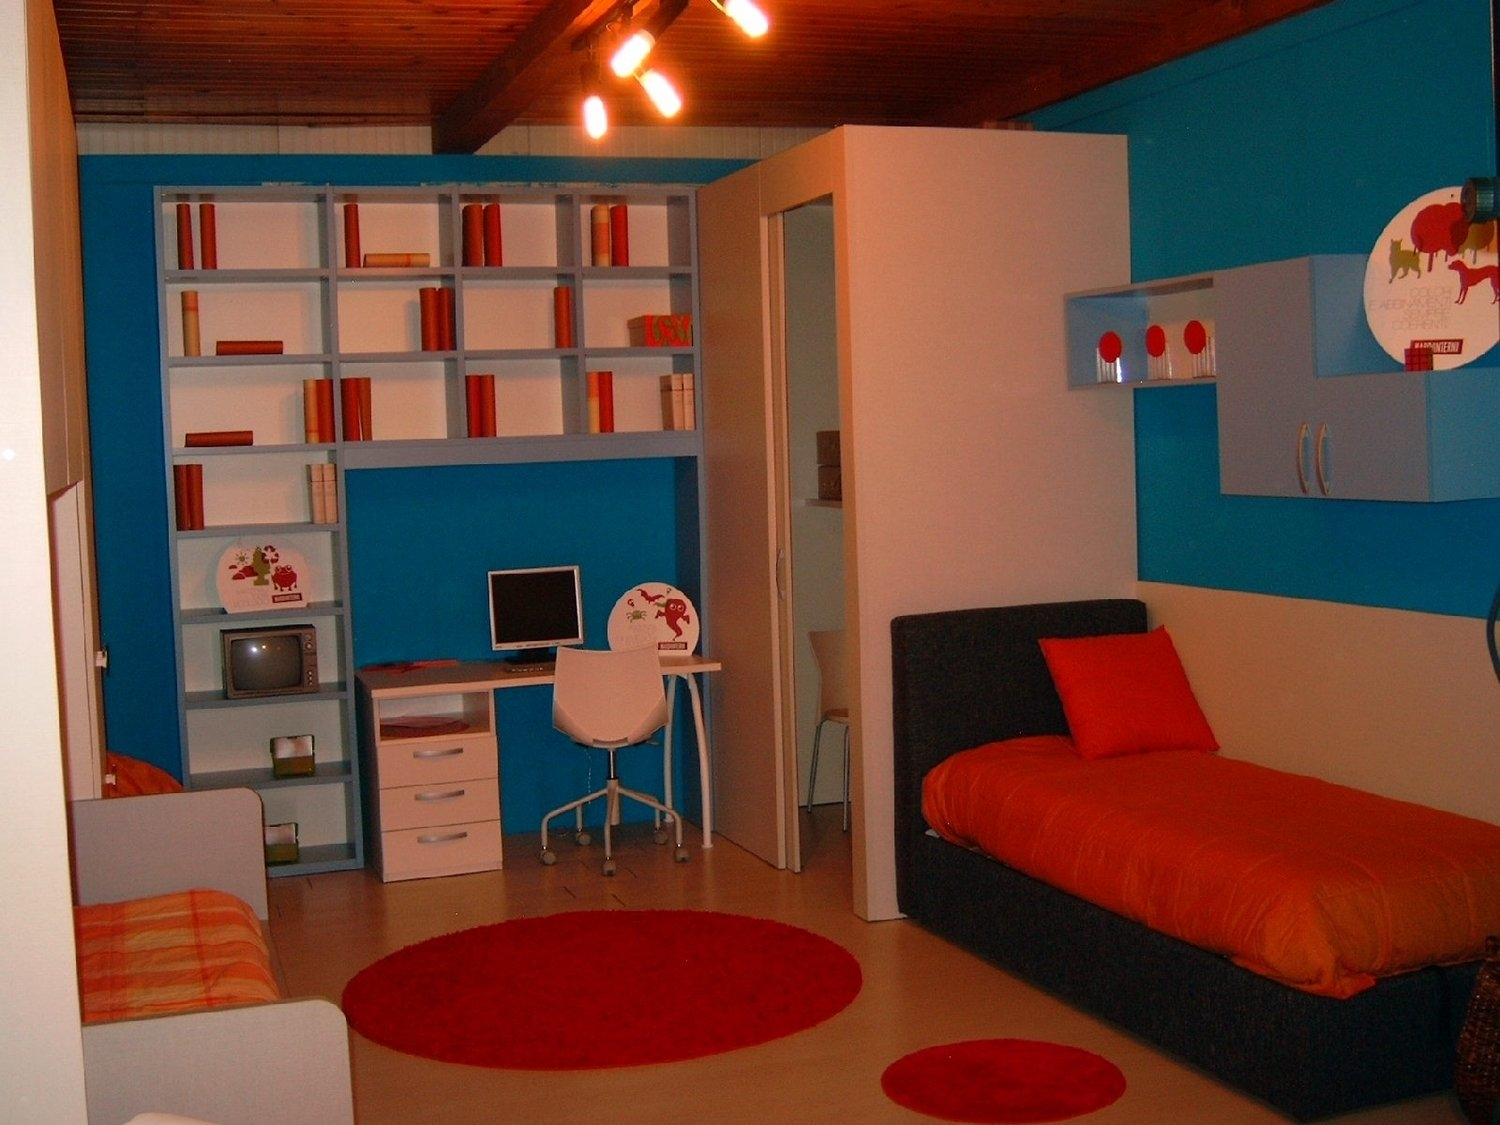 Awesome Camerette Con Cabina Armadio Pictures - Home Design Ideas ...